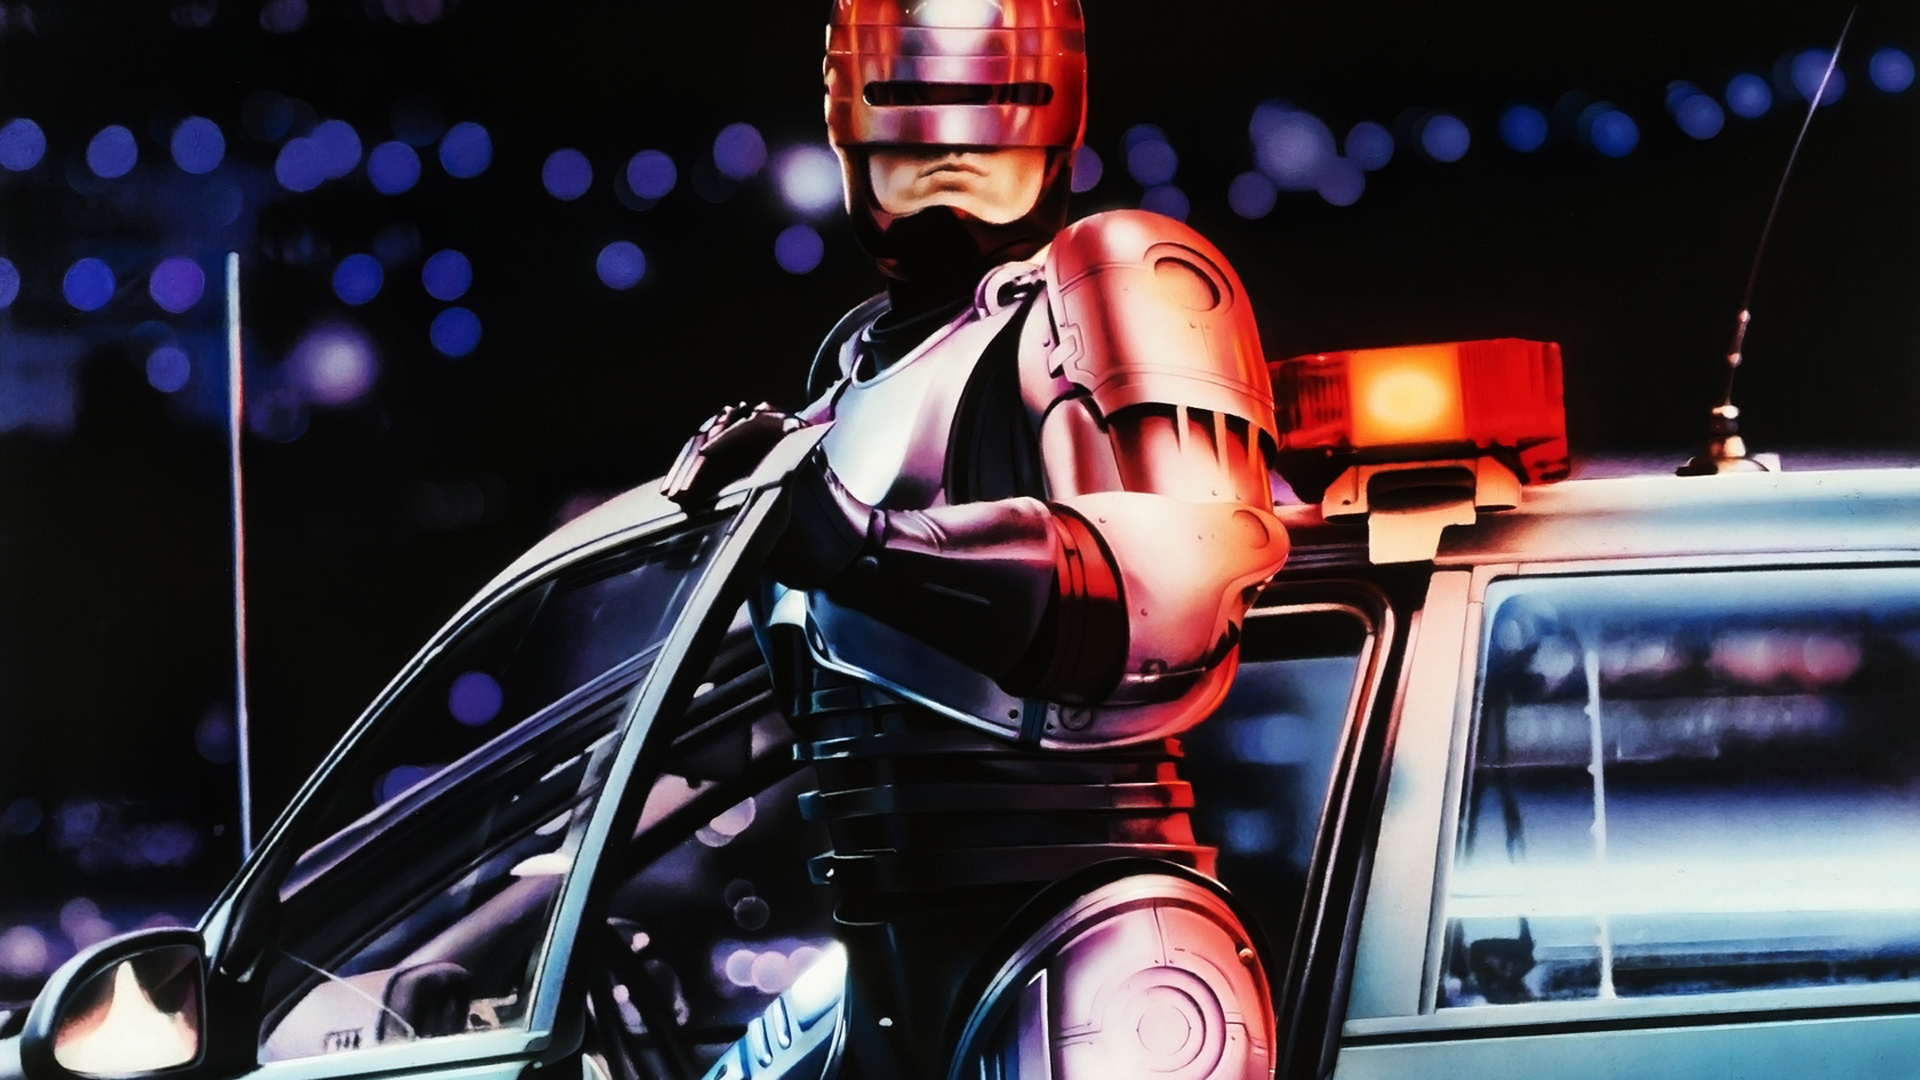 robocop (1987) full hd wallpaper and background image | 1920x1080